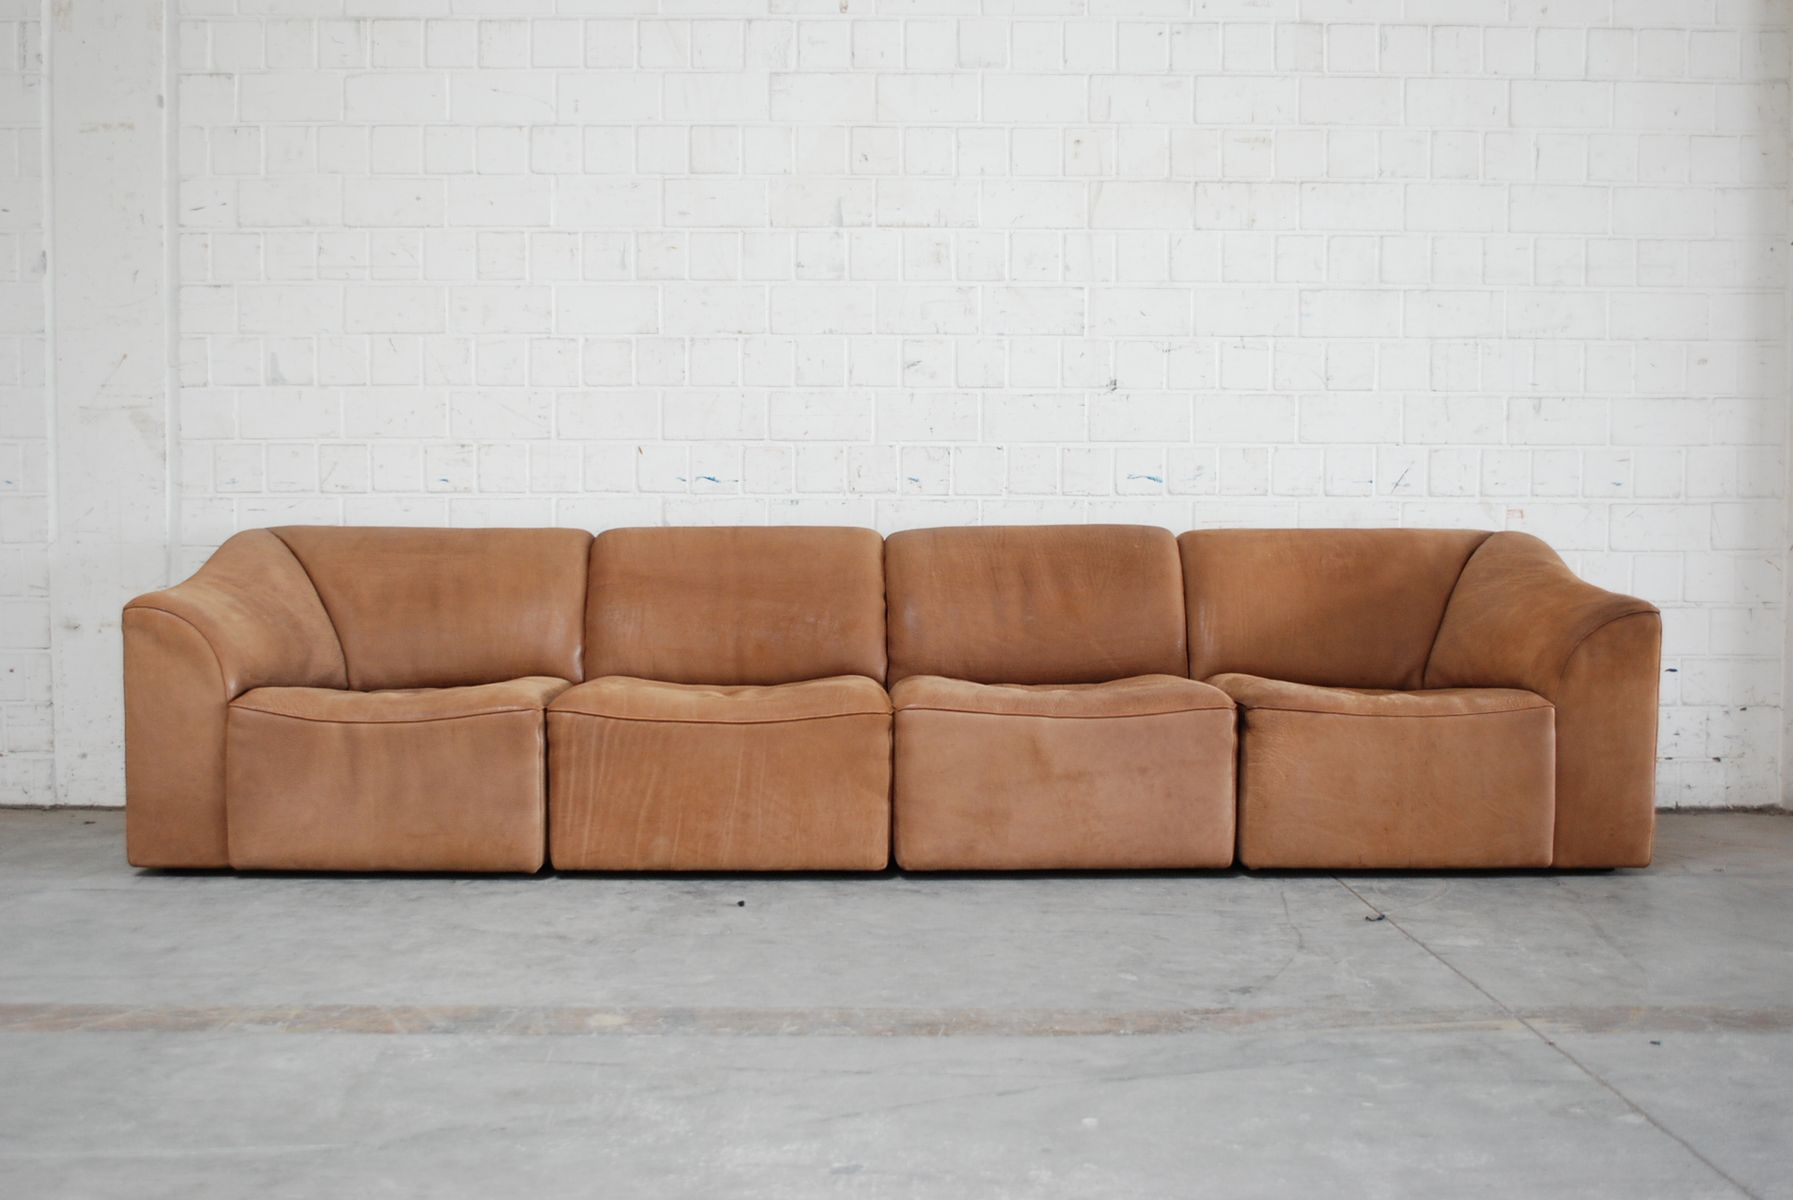 Modular Ds 10 Leather Sofa From De Sede 1985 For Sale At Pamono